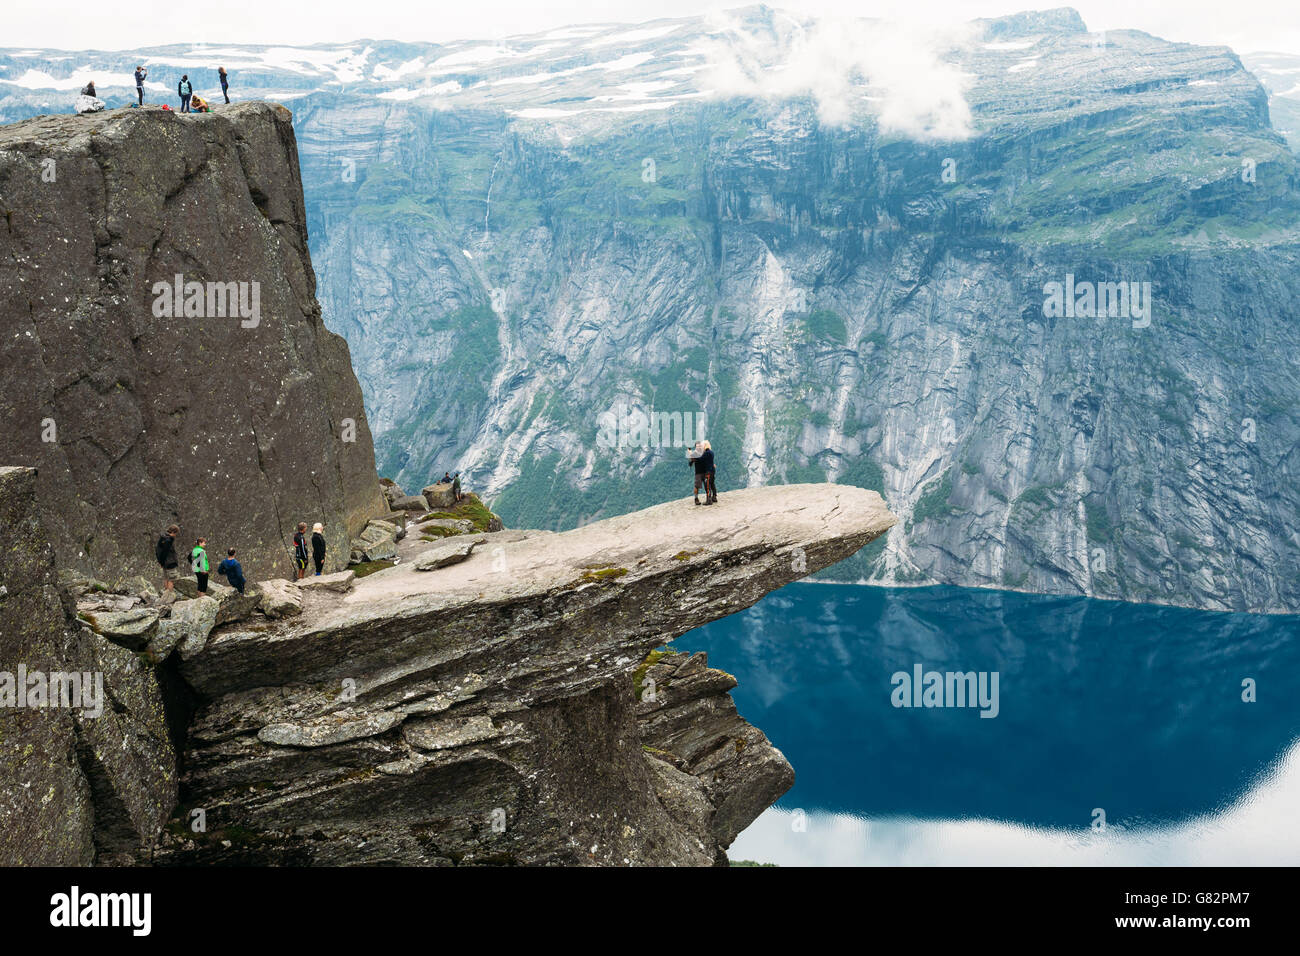 Odda, Norway - August 04, 2014: Young People Are Photographed Standing On A Rock Trolltunga - Troll Tongue In Norway - Stock Image